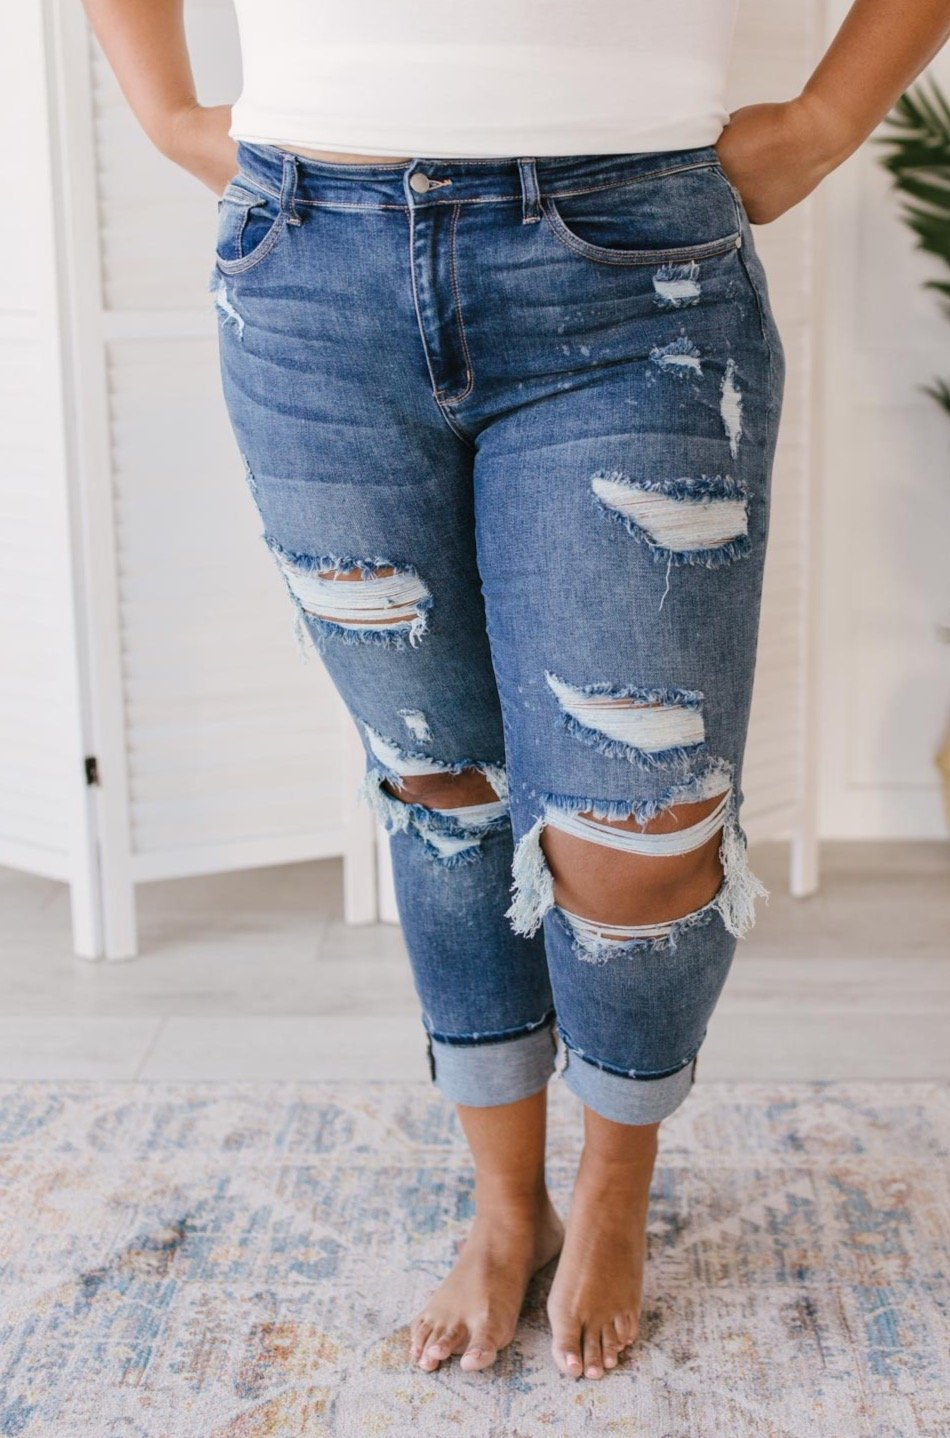 Just My Type Destroyed Boyfriend Jeans-Ave Shops-Avis Lane Boutique-Justin, Texas